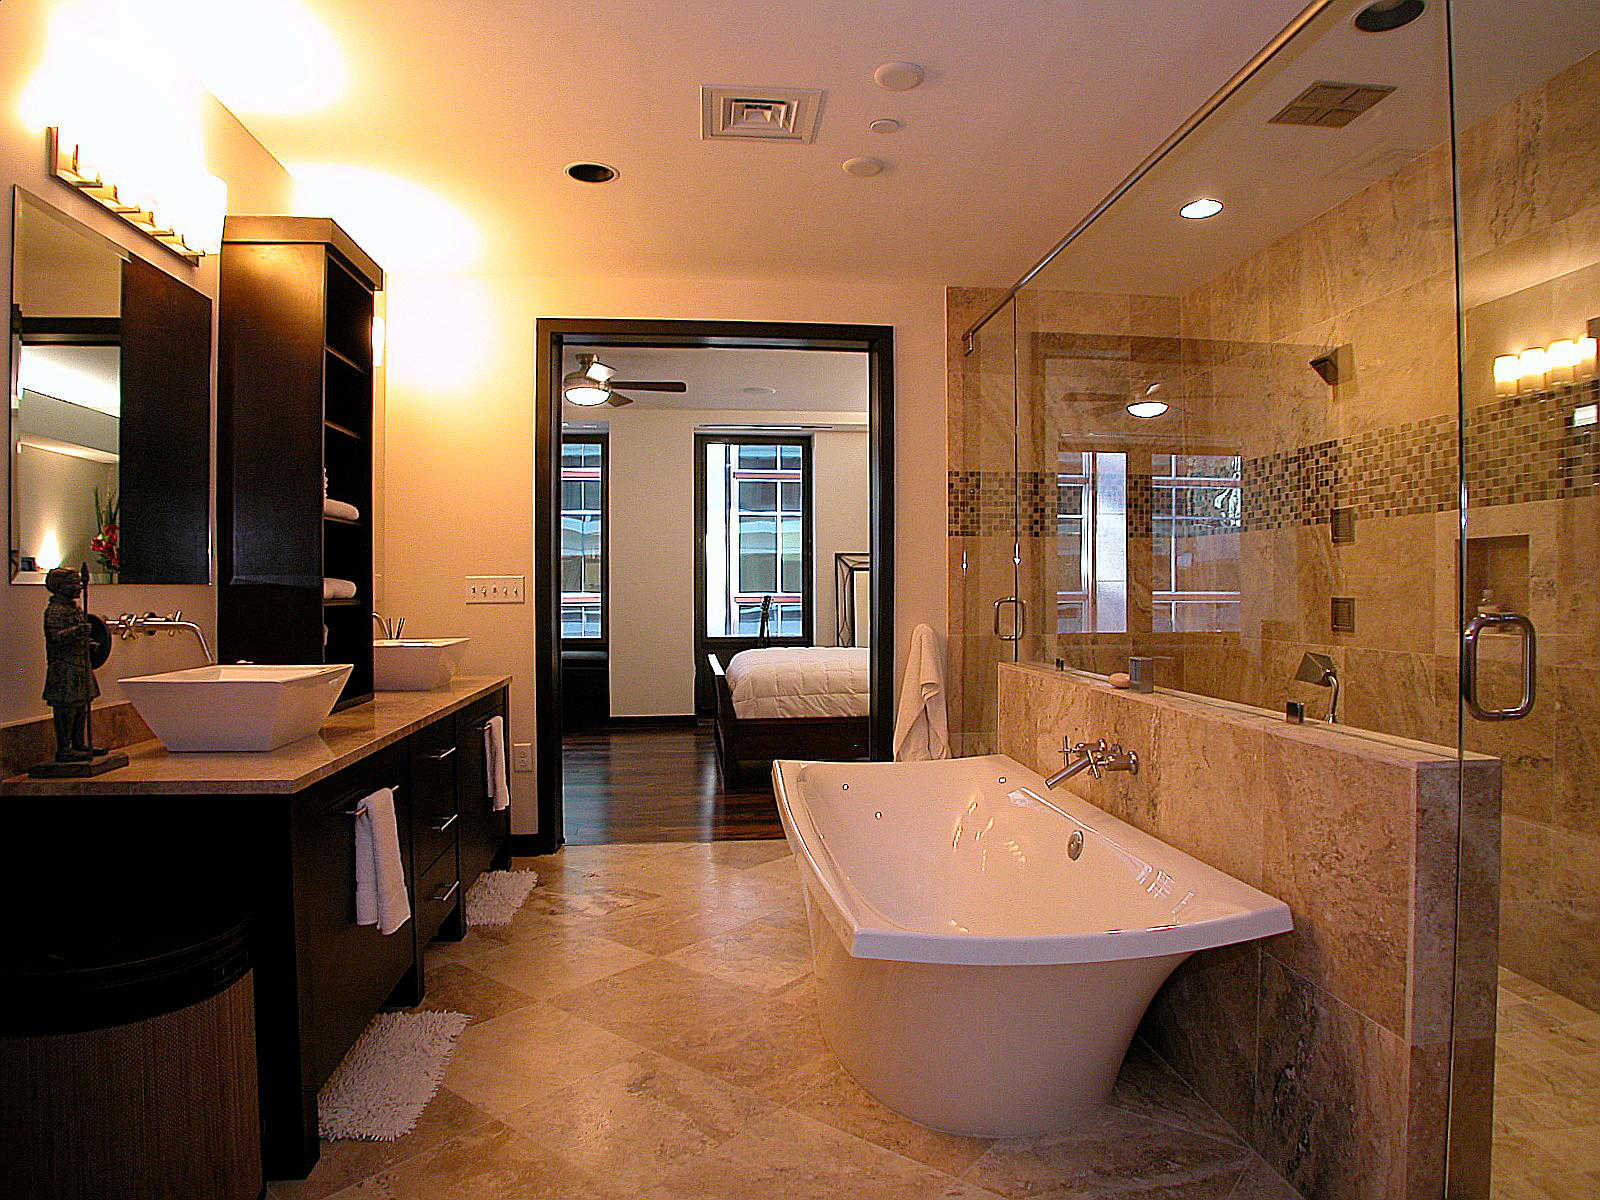 The trust condos the trust condominiums charlotte - Master bathroom ...